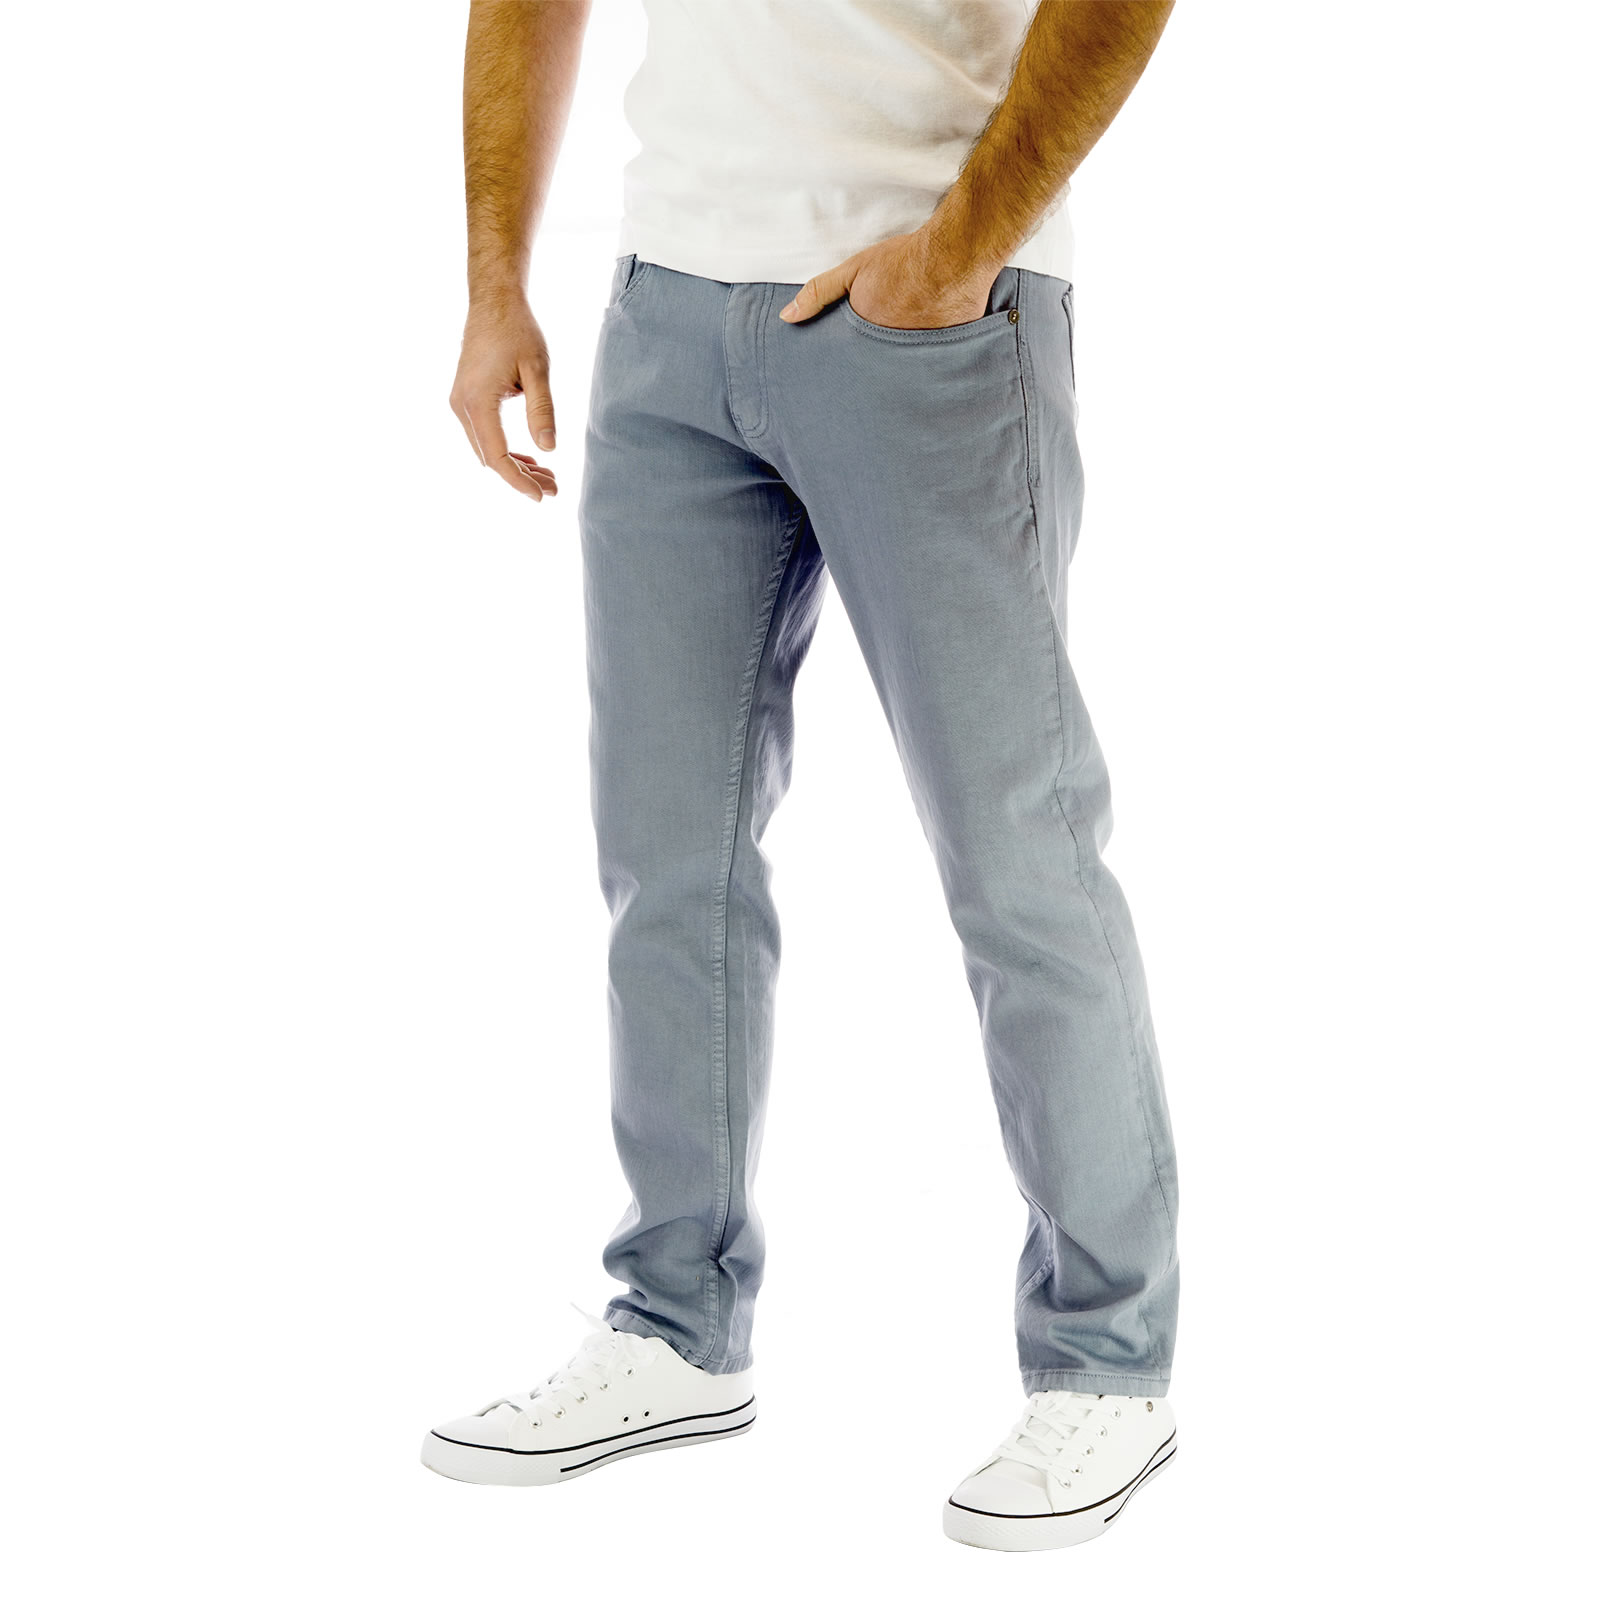 Shop men's pants and find everything from men's corduroy pants and khakis to chino pants and men's joggers. Ralph Lauren Pants & Chinos. View All. Go to previous page; 1 / 5 ; Next Page; Take 30% off color (4) Stretch Classic Corduroy Pant $ Take 30% off Polo Ralph Lauren Stretch Classic Corduroy Pant $